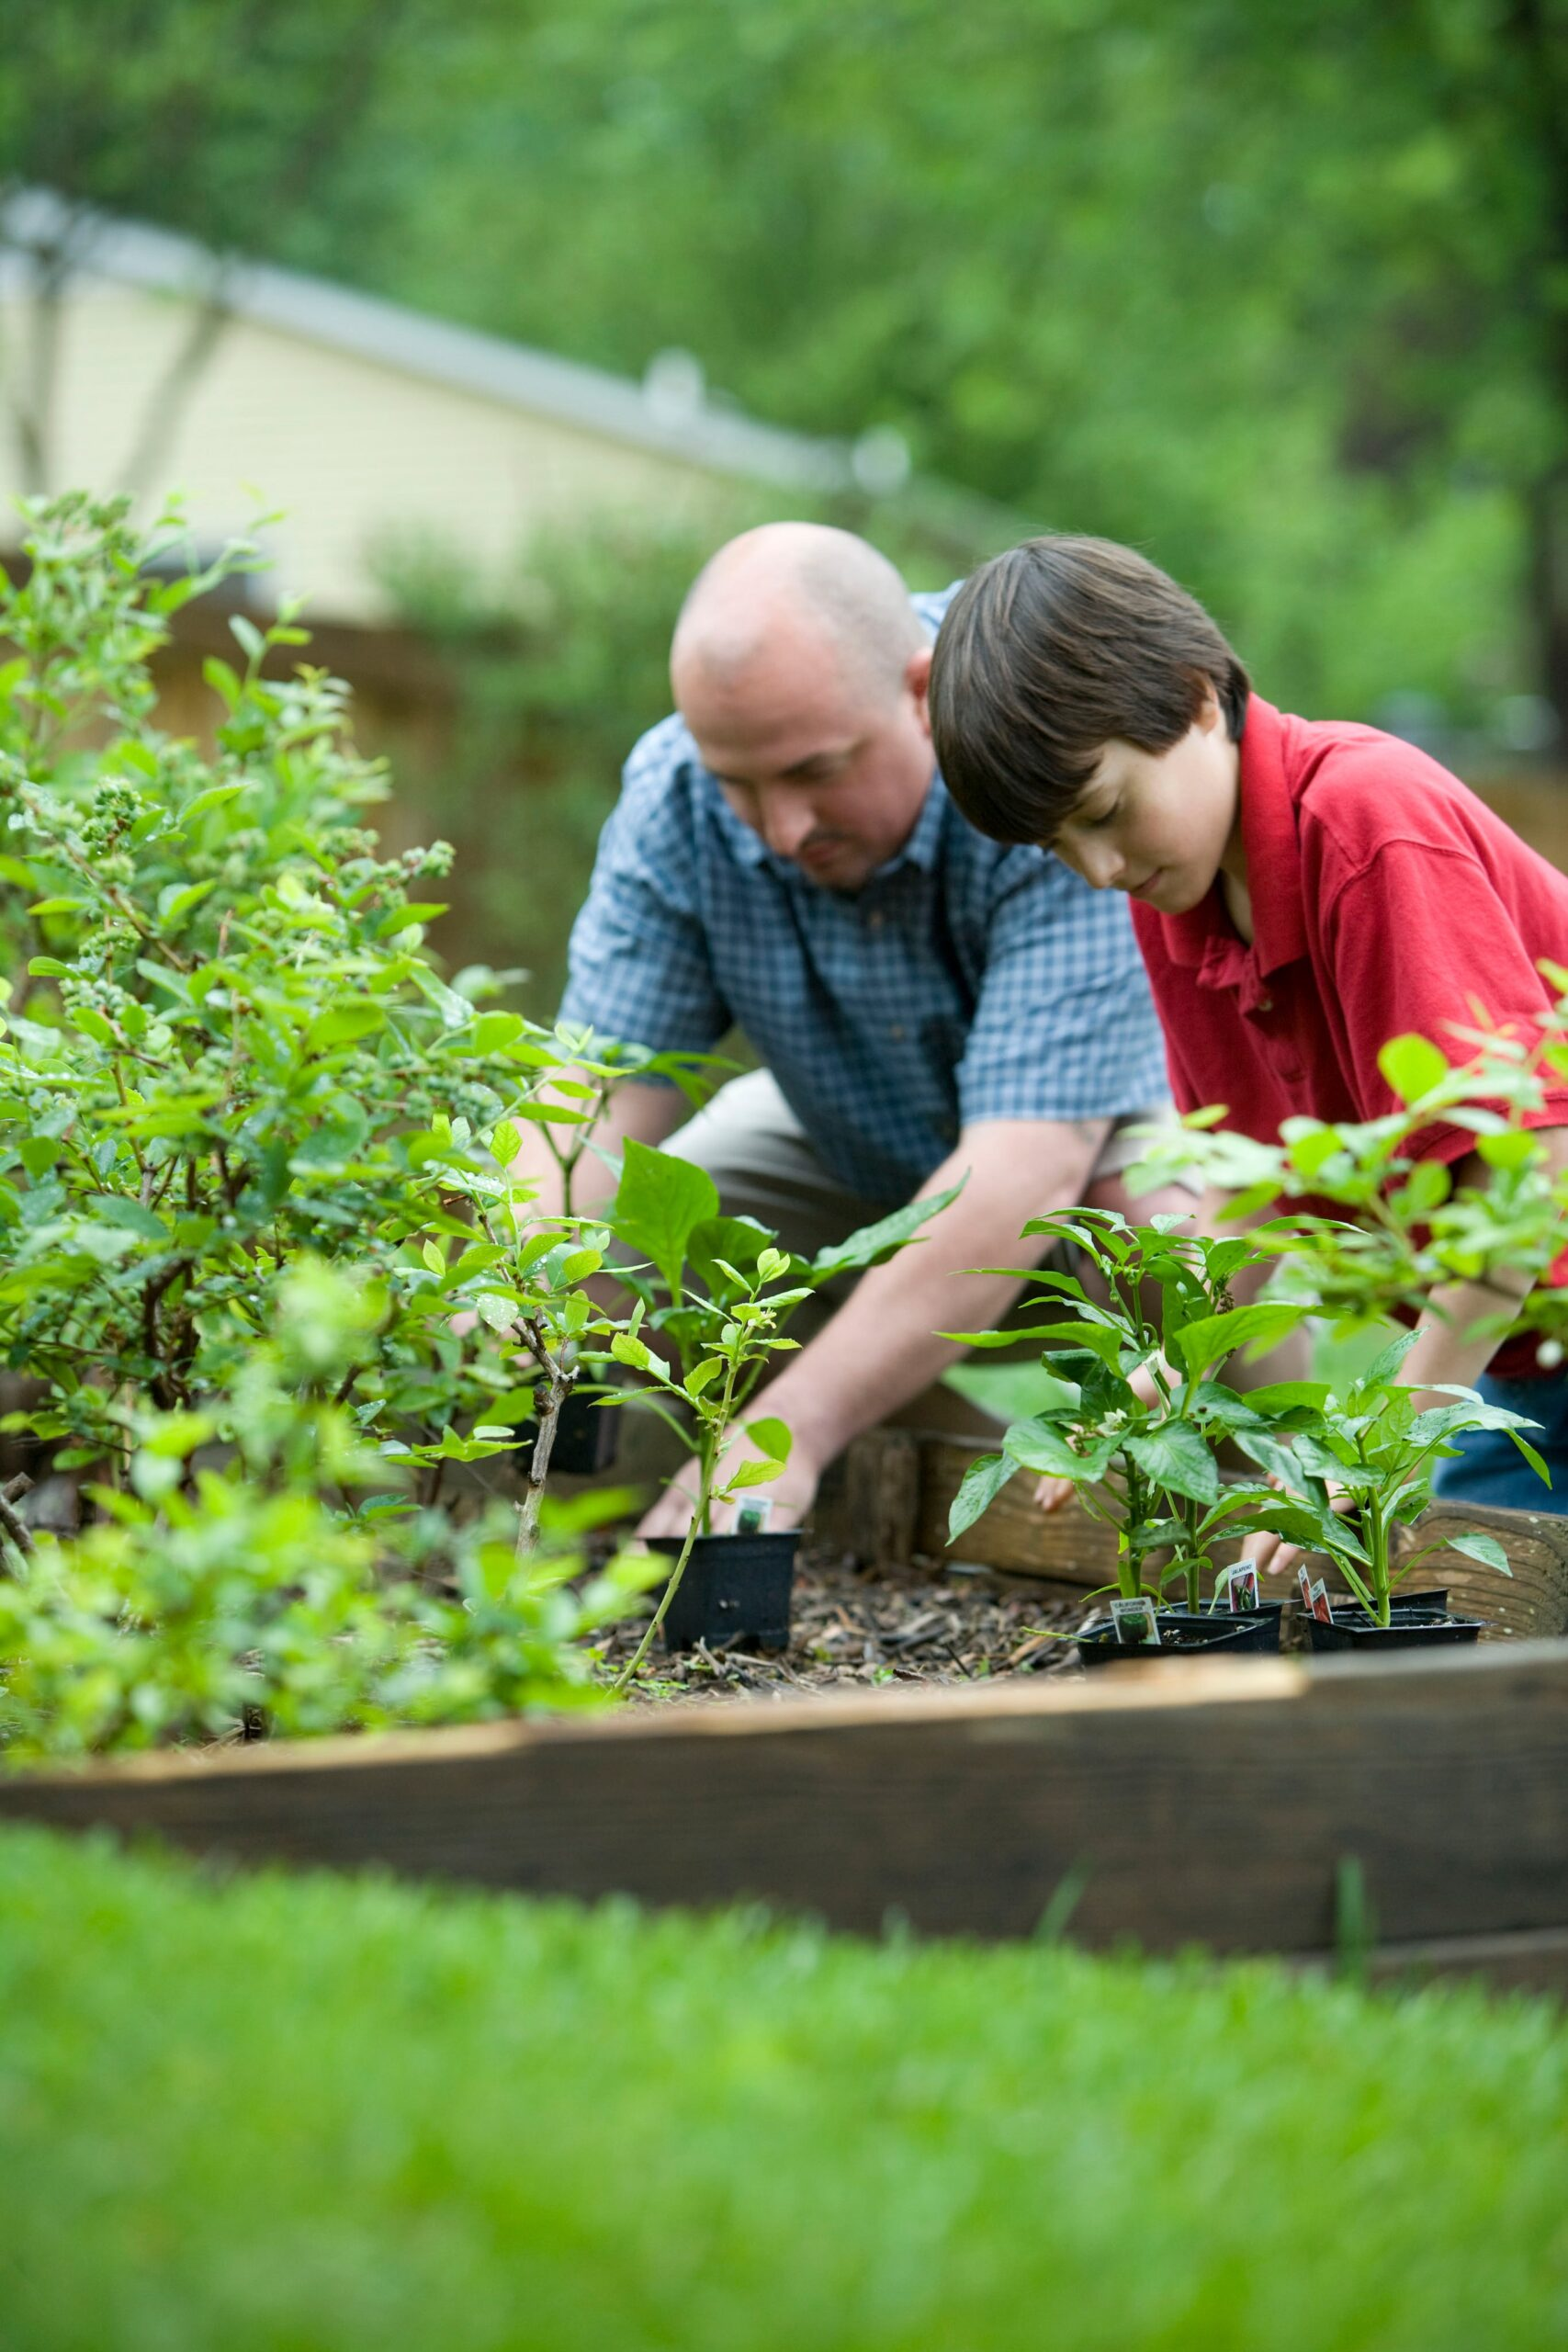 Man and young boy gardening